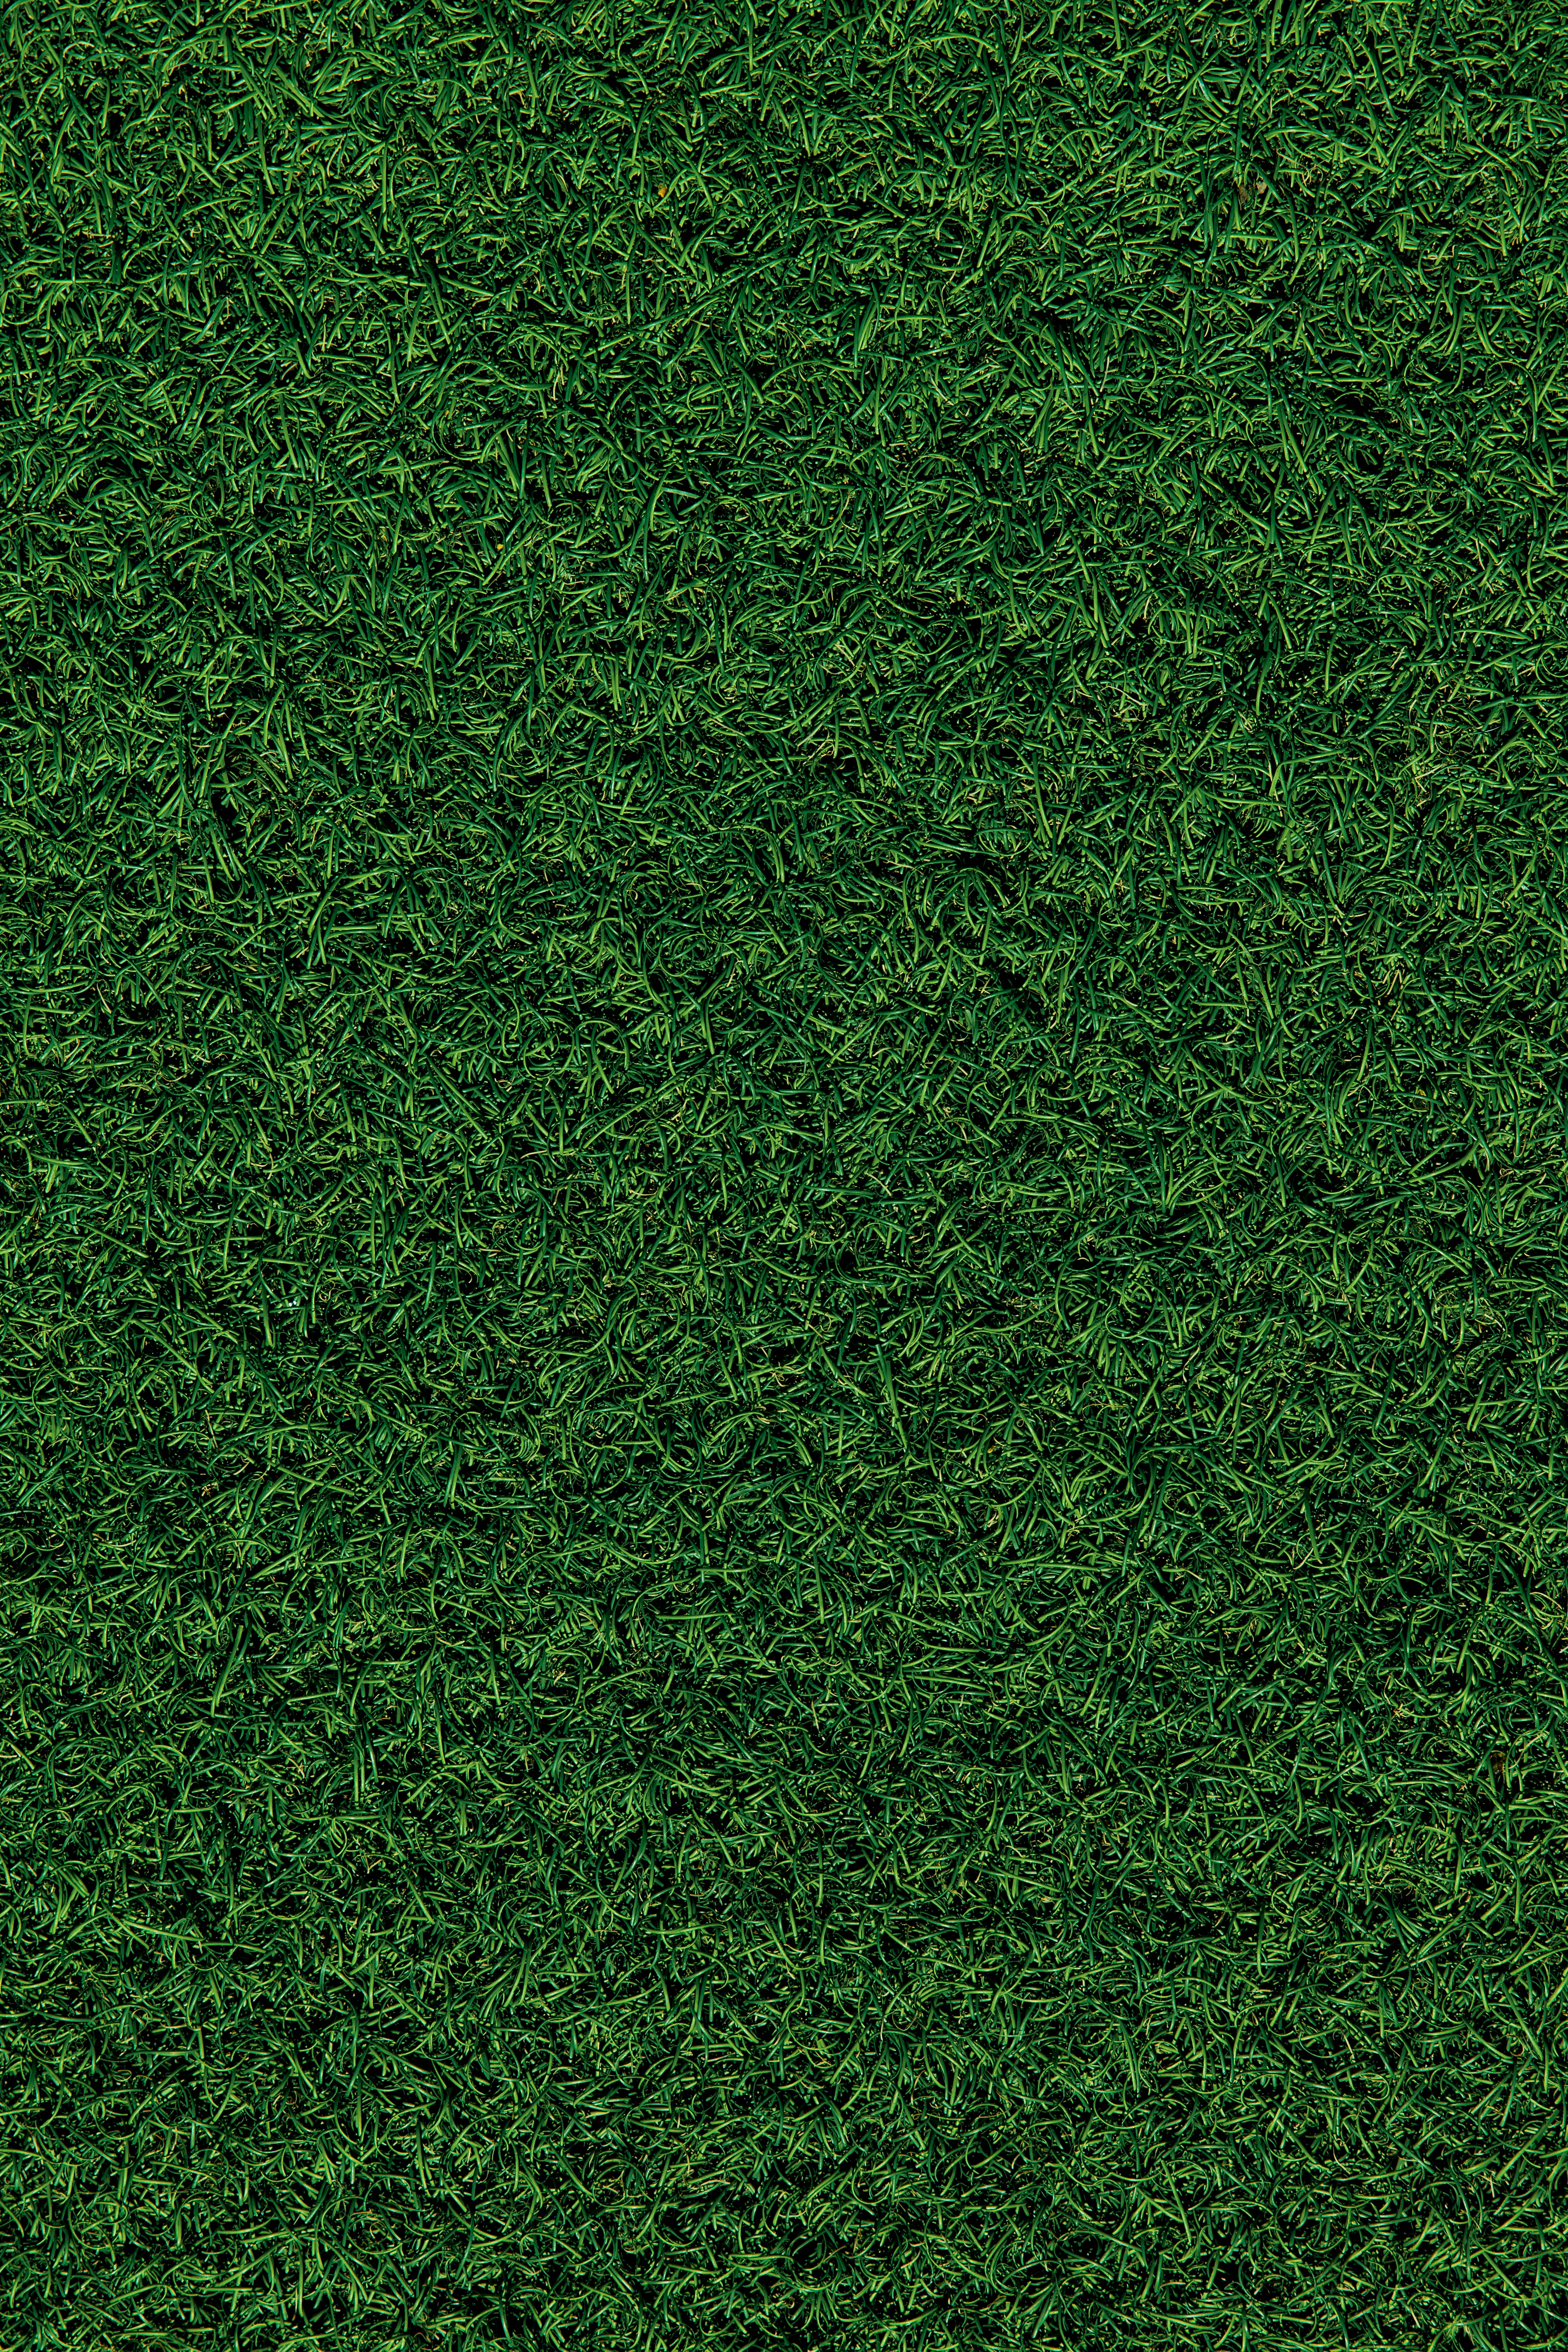 116849 free download Green wallpapers for phone, Nature, Grass, Field, Coating, Covering Green images and screensavers for mobile